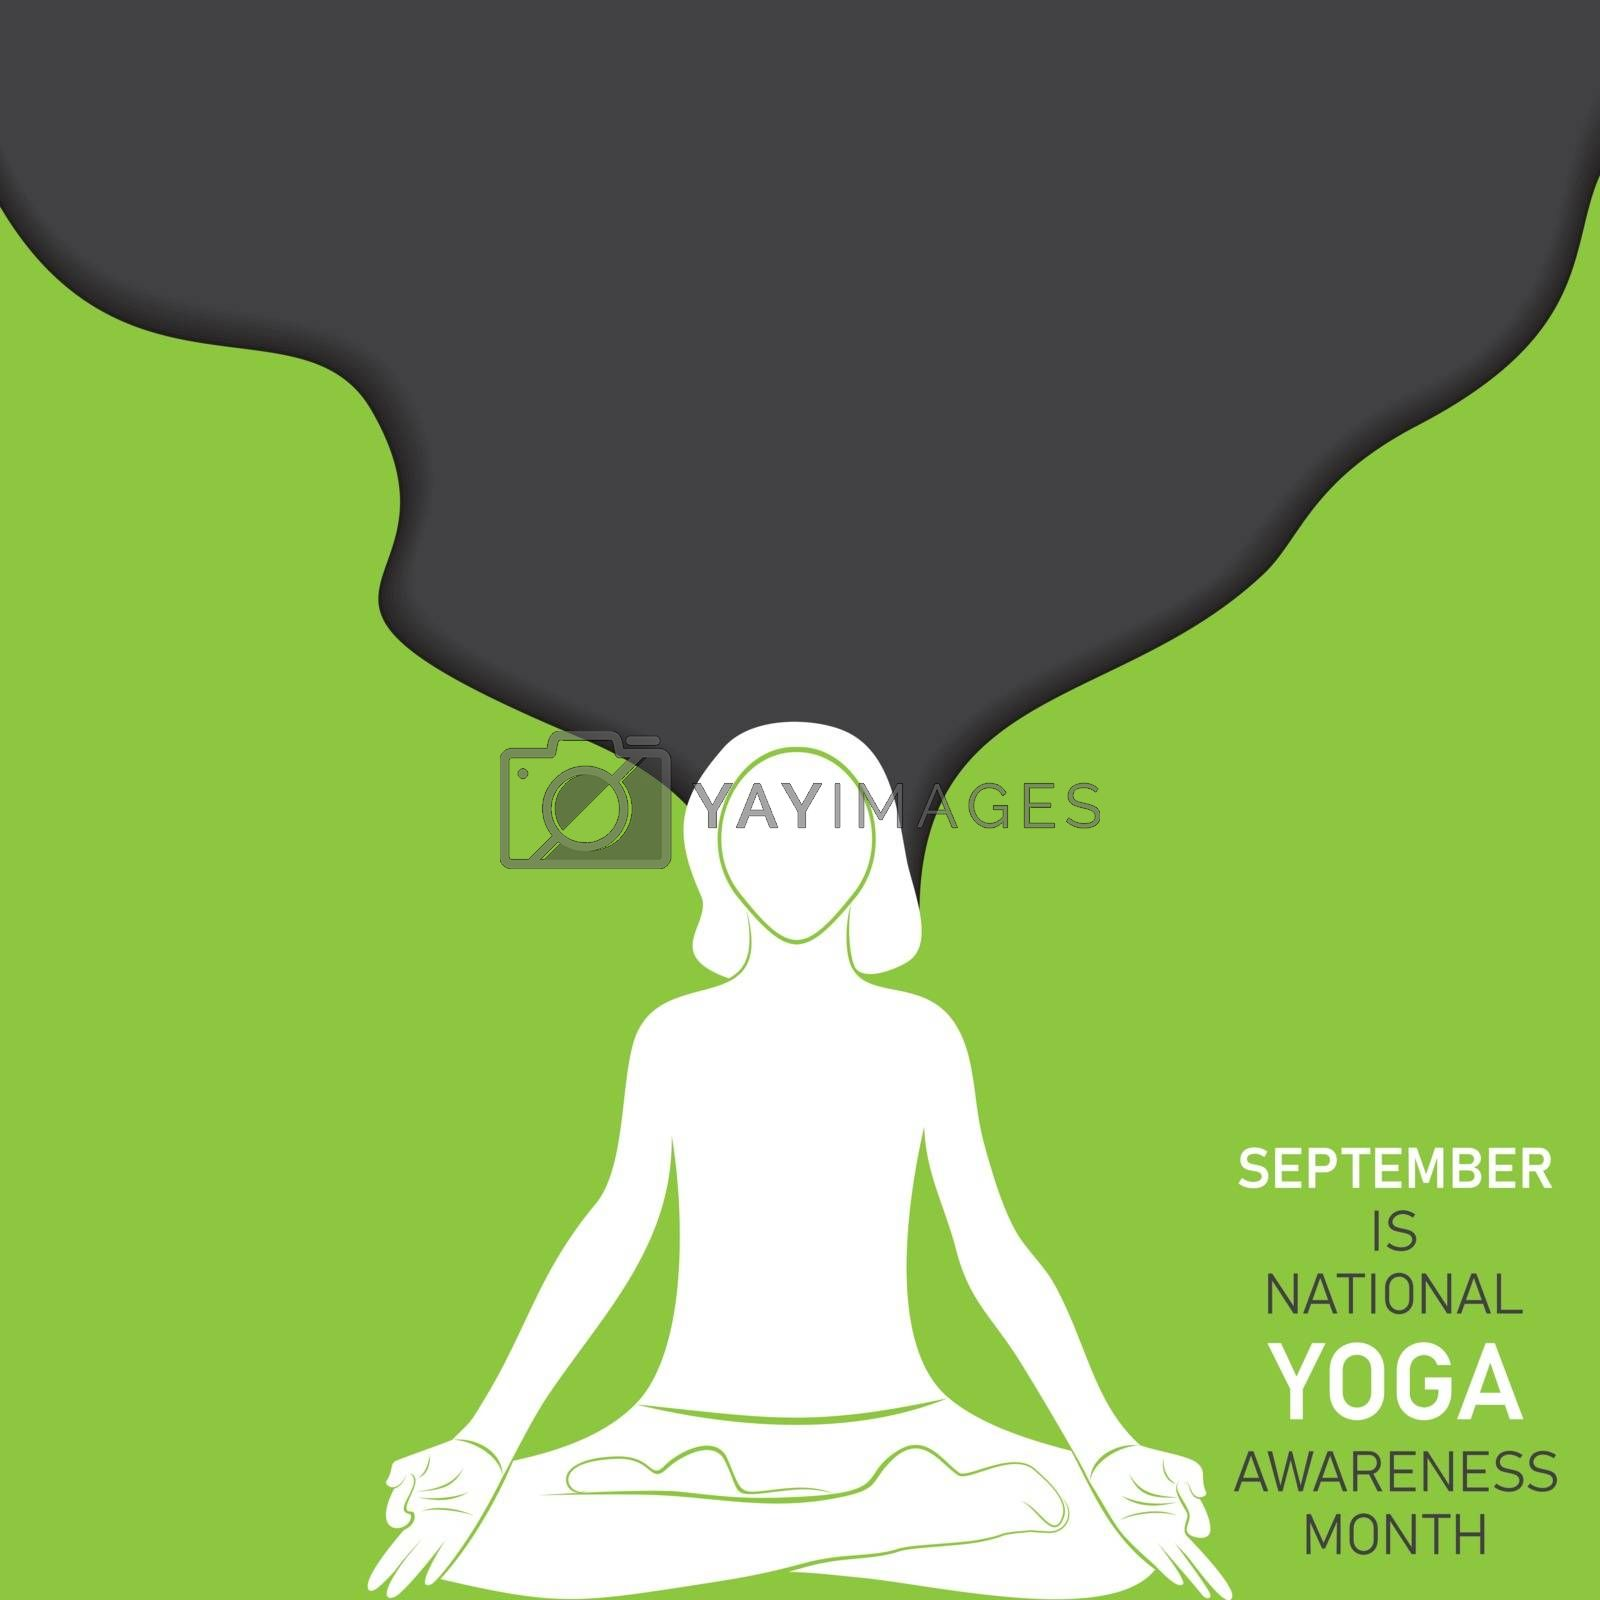 National Yoga Awareness month observed in September every year by graphicsdunia4you